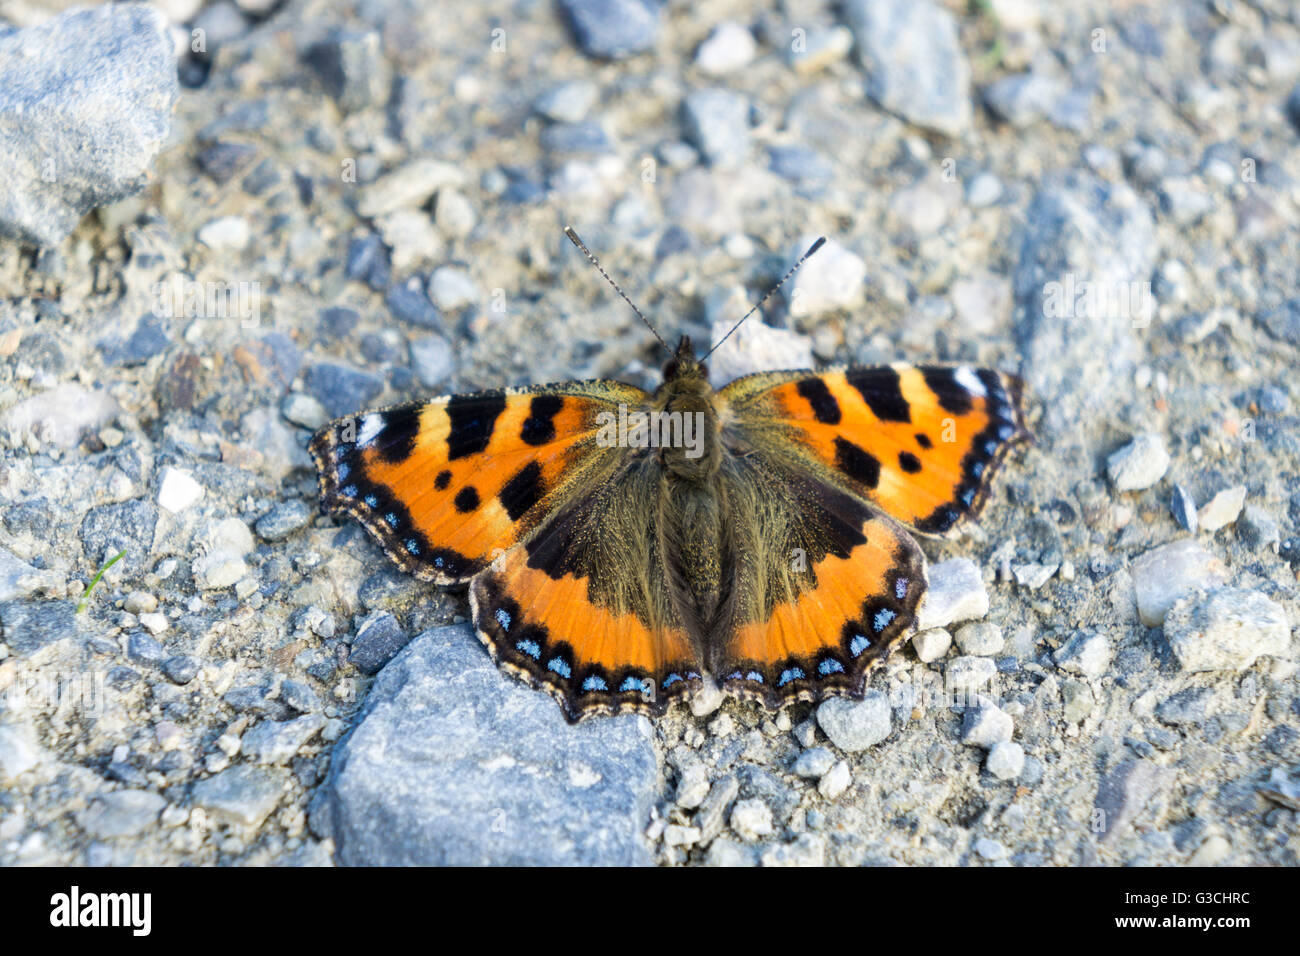 Butterfly on ground, Lepidoptera - Stock Image